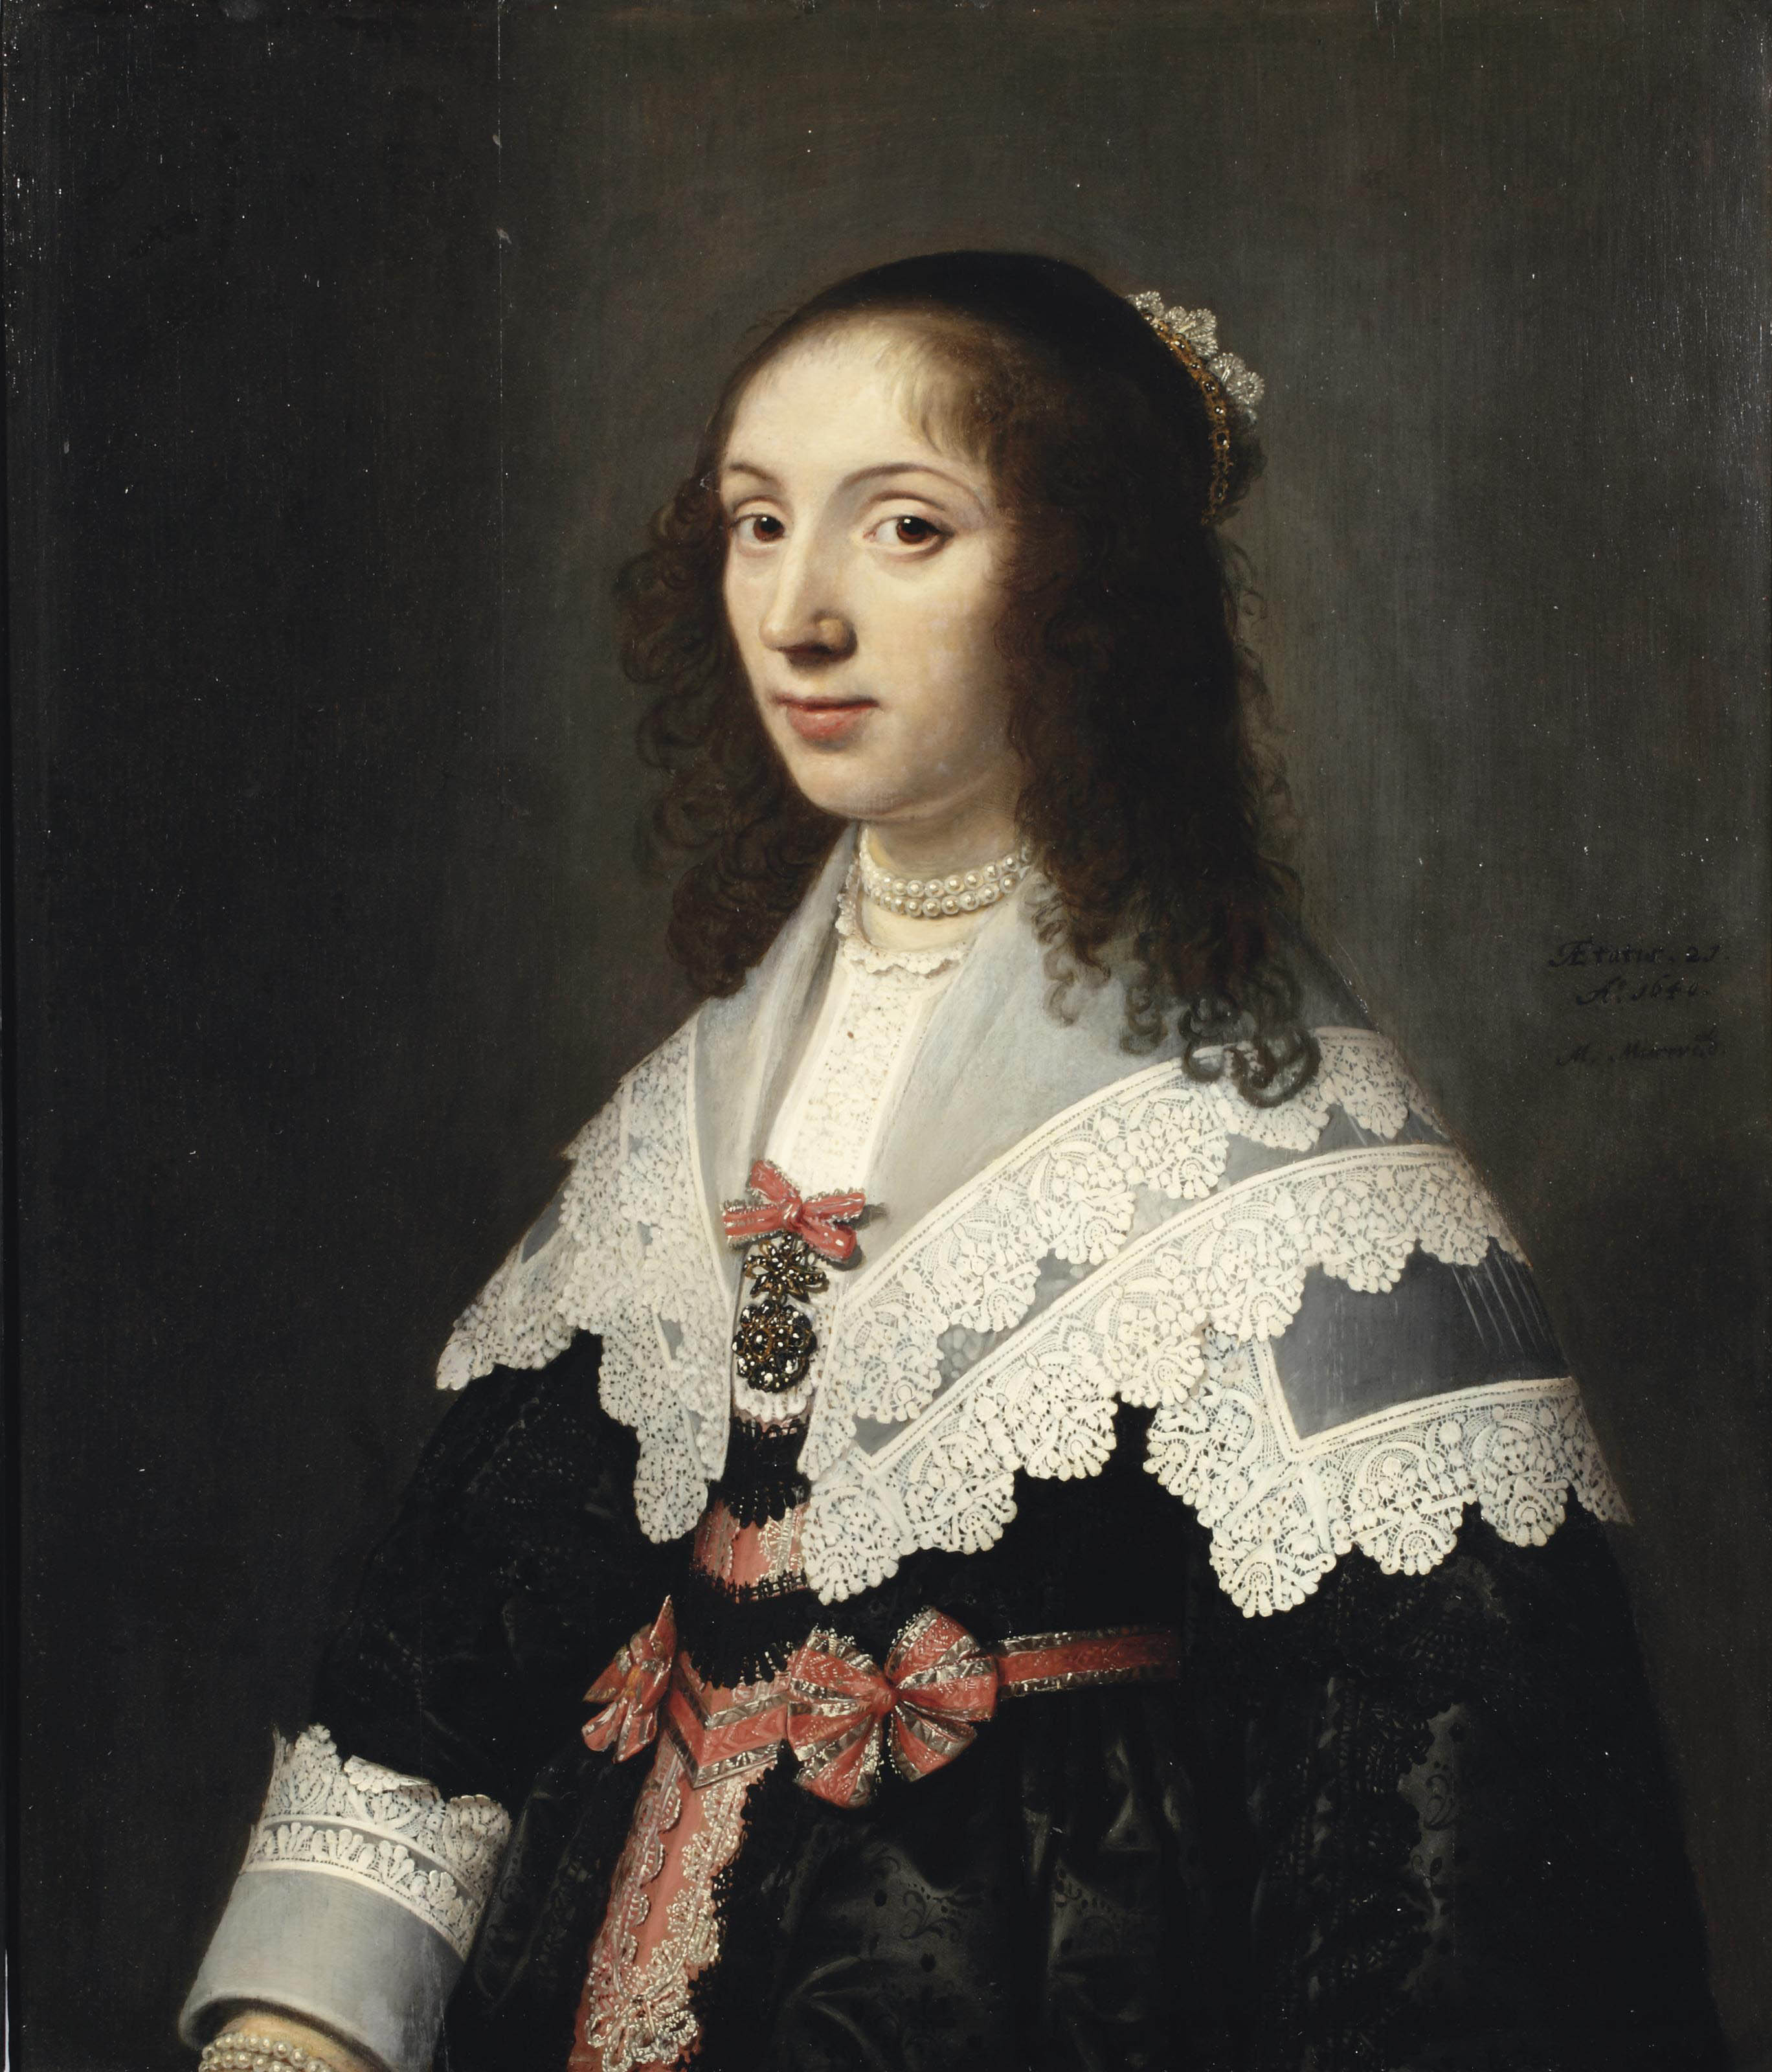 Portrait of Agatha de Vlaming van Oudtshoorn (1619-1675), half-length, in an embroidered black dress with red and silver silk decorations, with a white lace collar and cuffs, a pearl necklace and a jewelled tiara